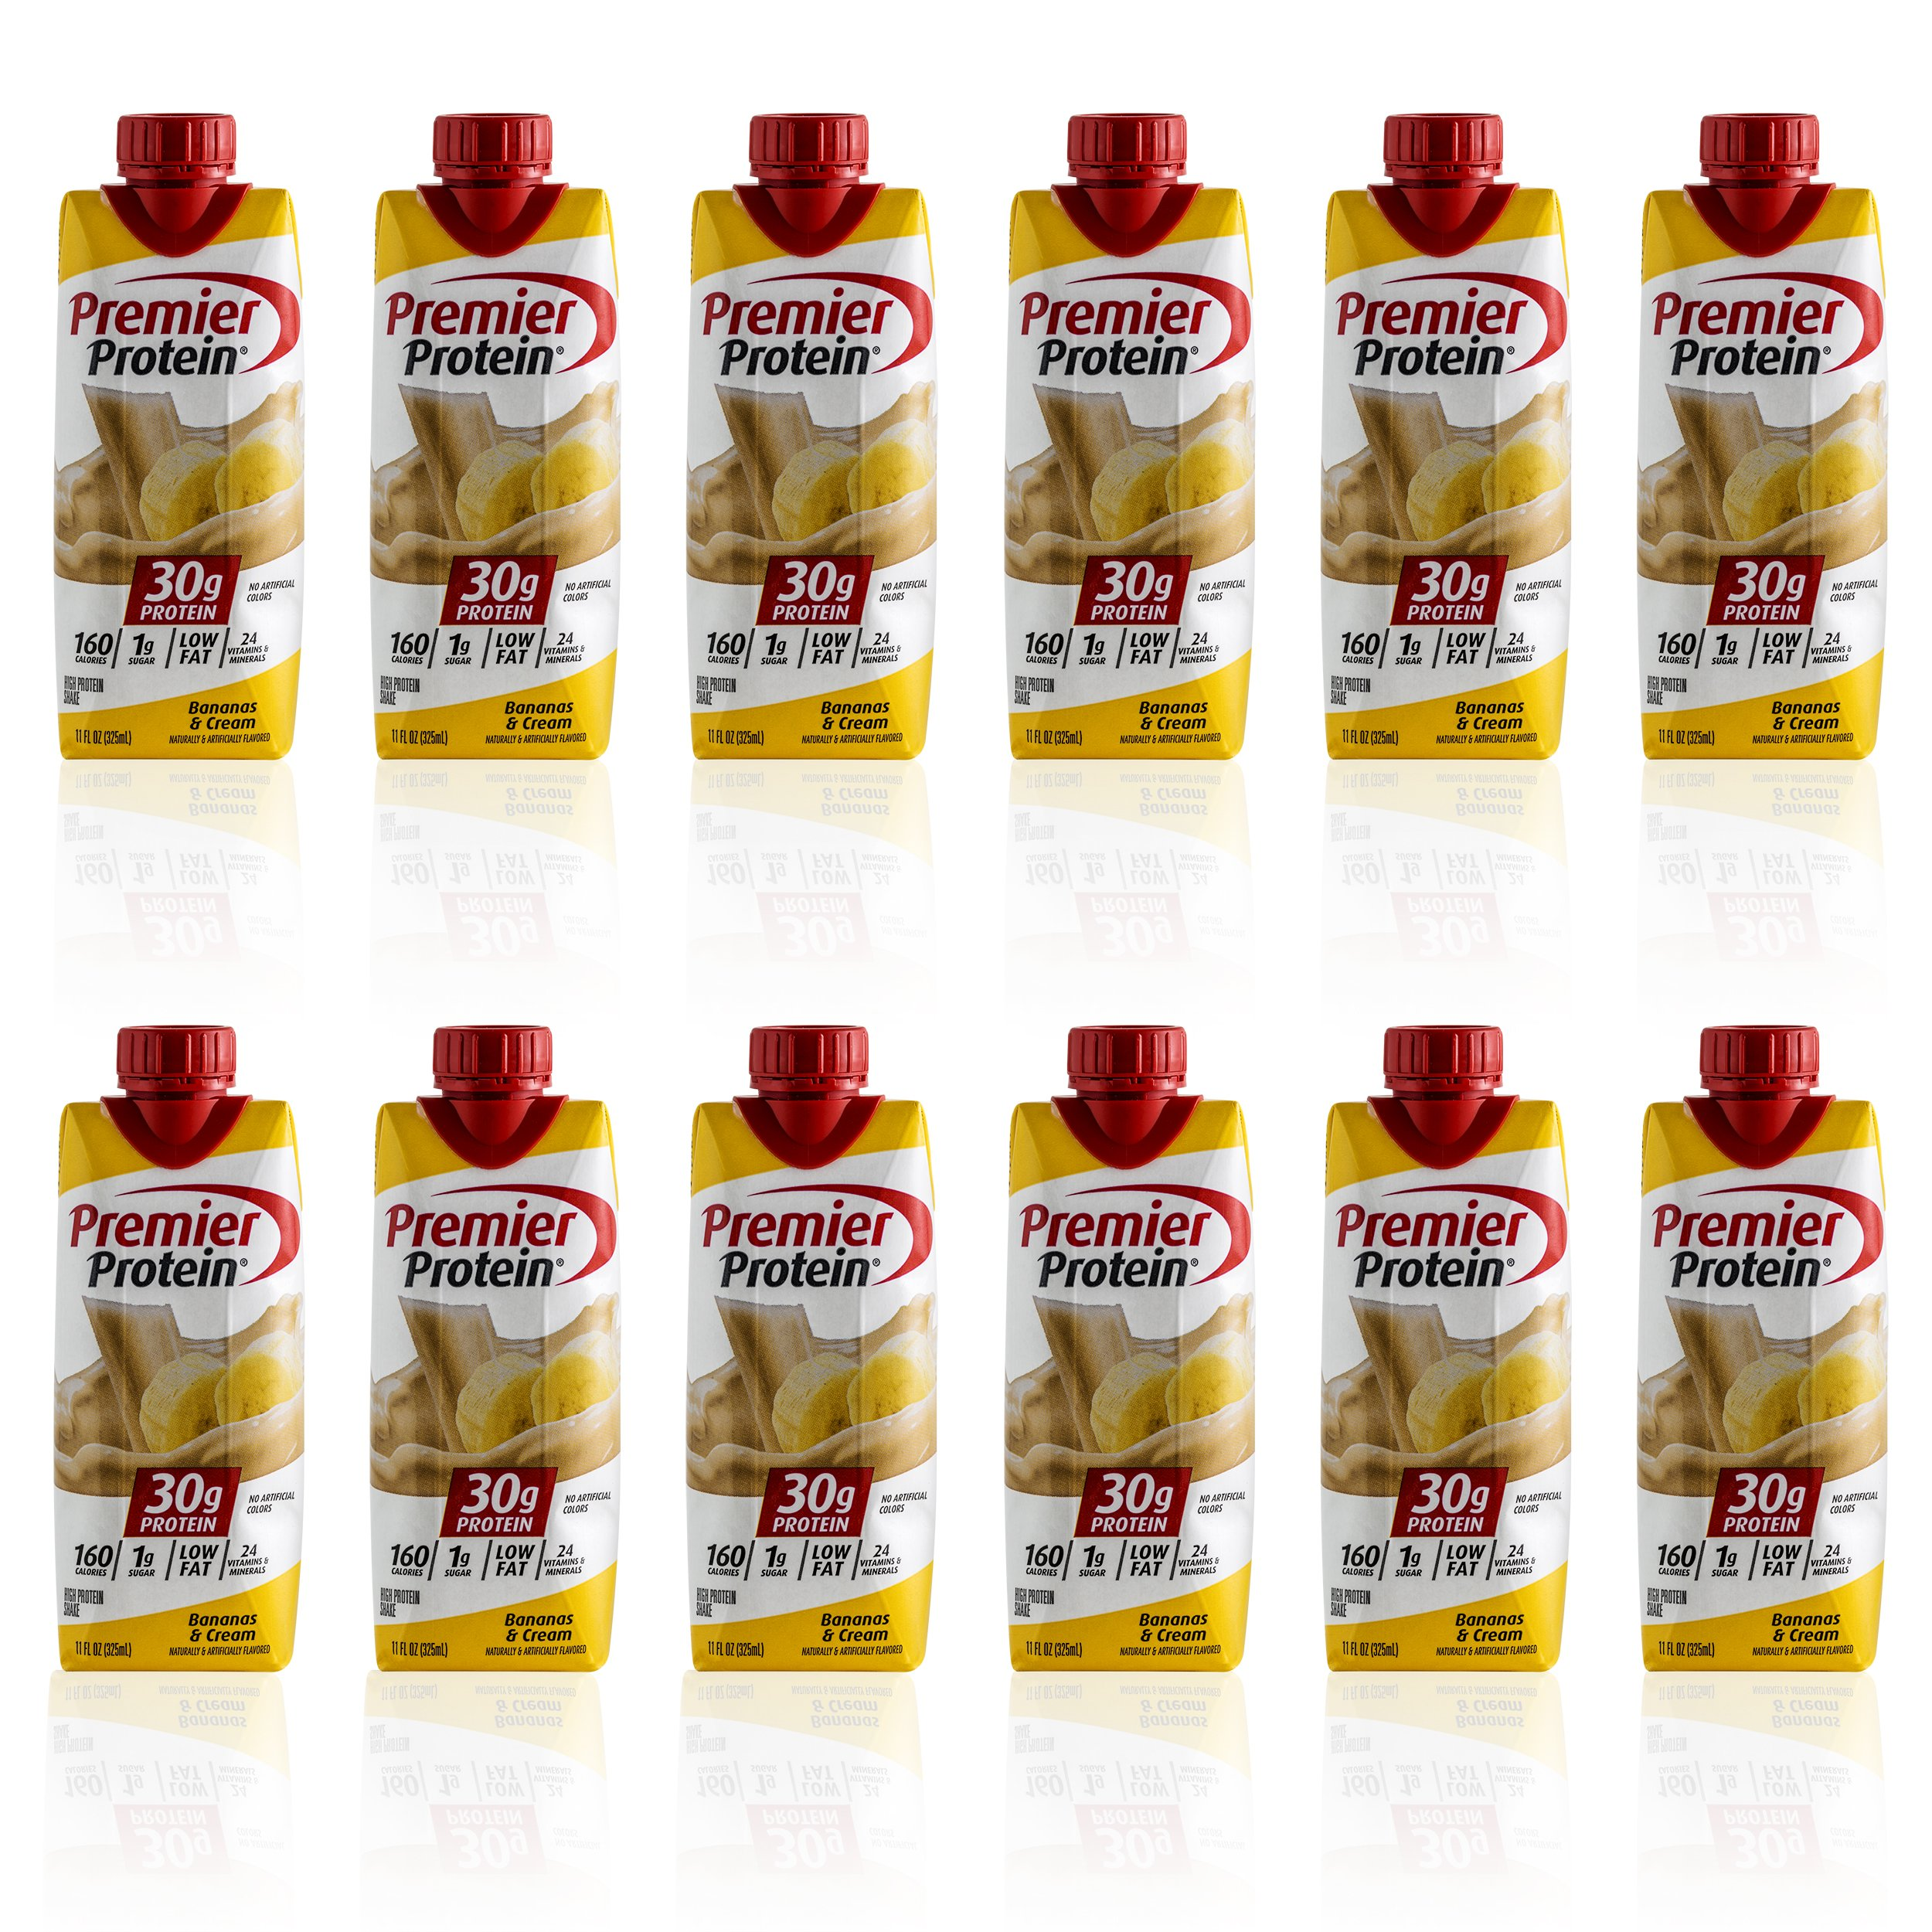 Premier Protein - 10 Pack (Bananas and Cream),11 fl.oz each